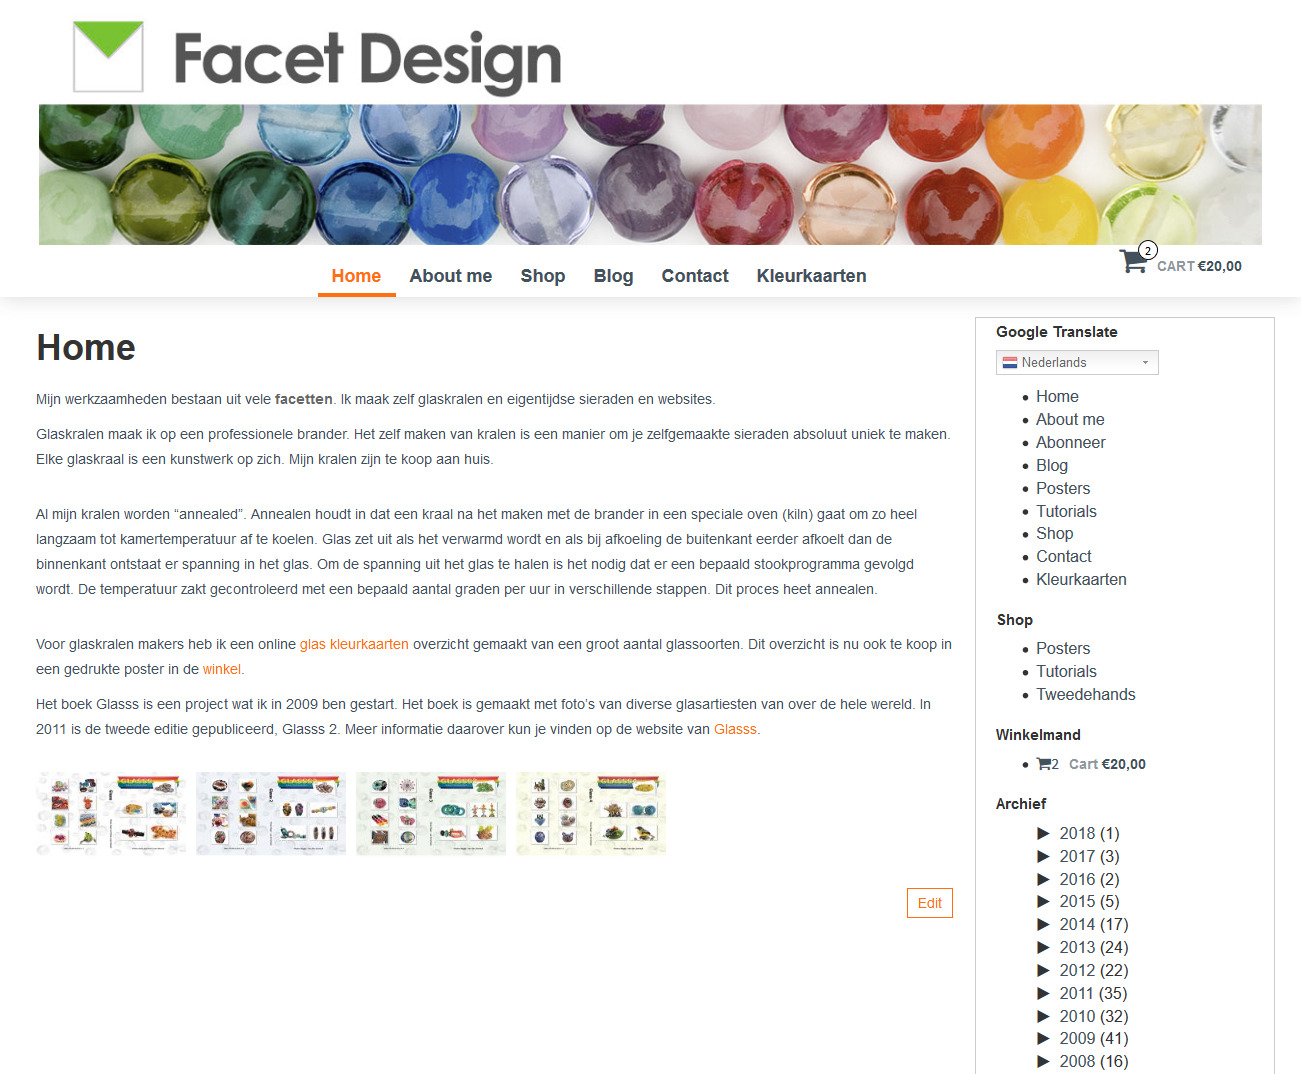 screenshot-www.facet-design.com-2019.06.09-13-50-59